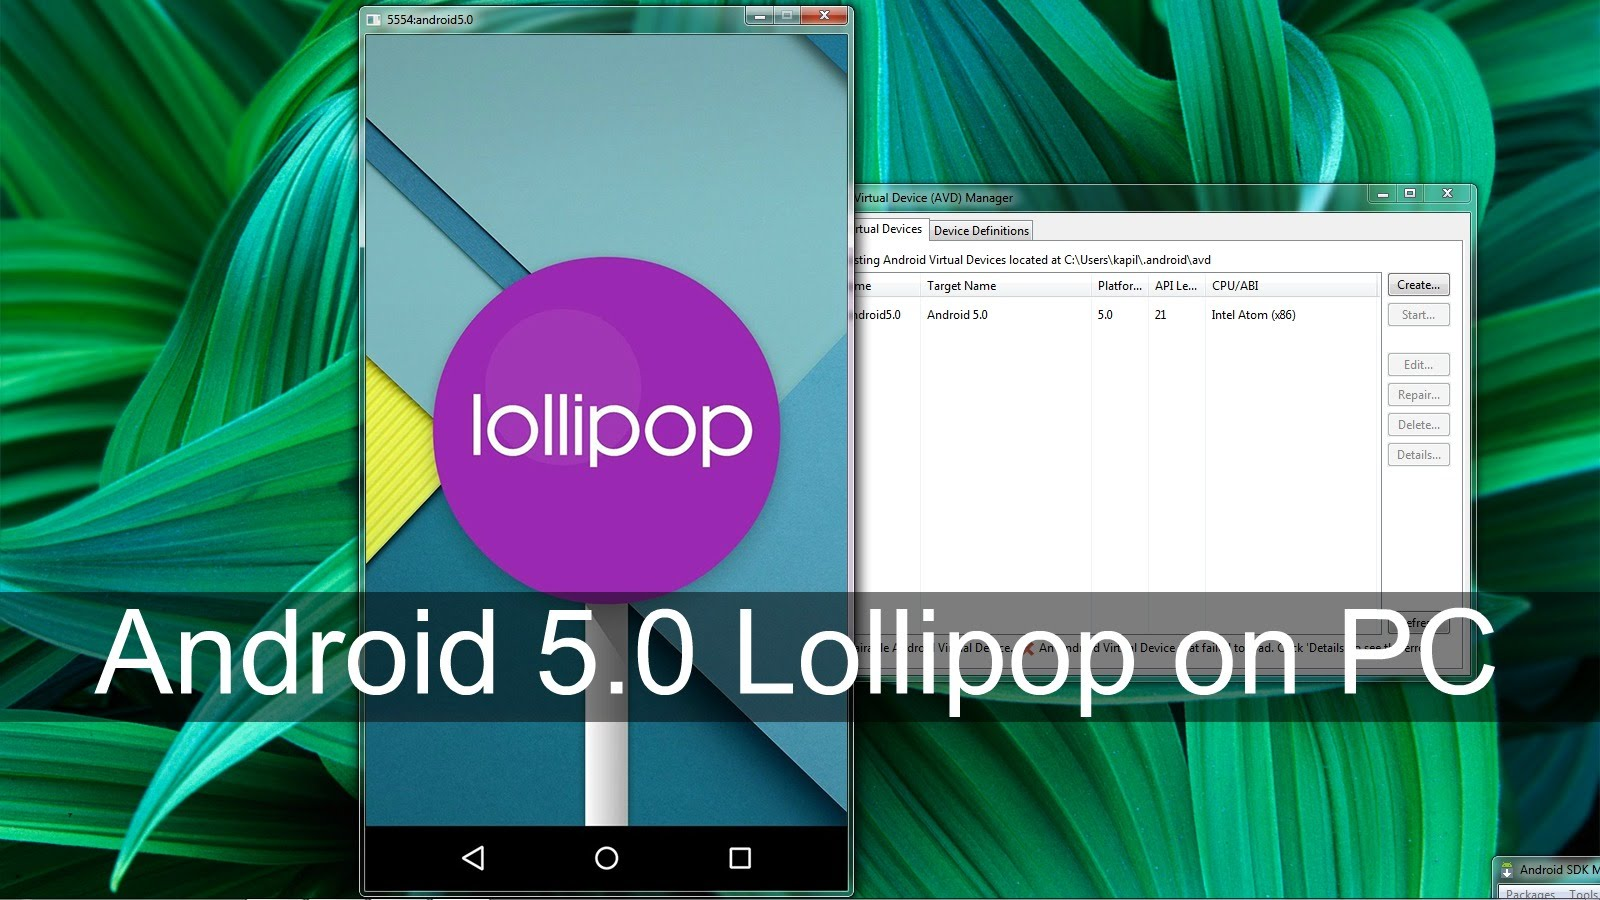 Android 5.0 Lollipop Install on PC